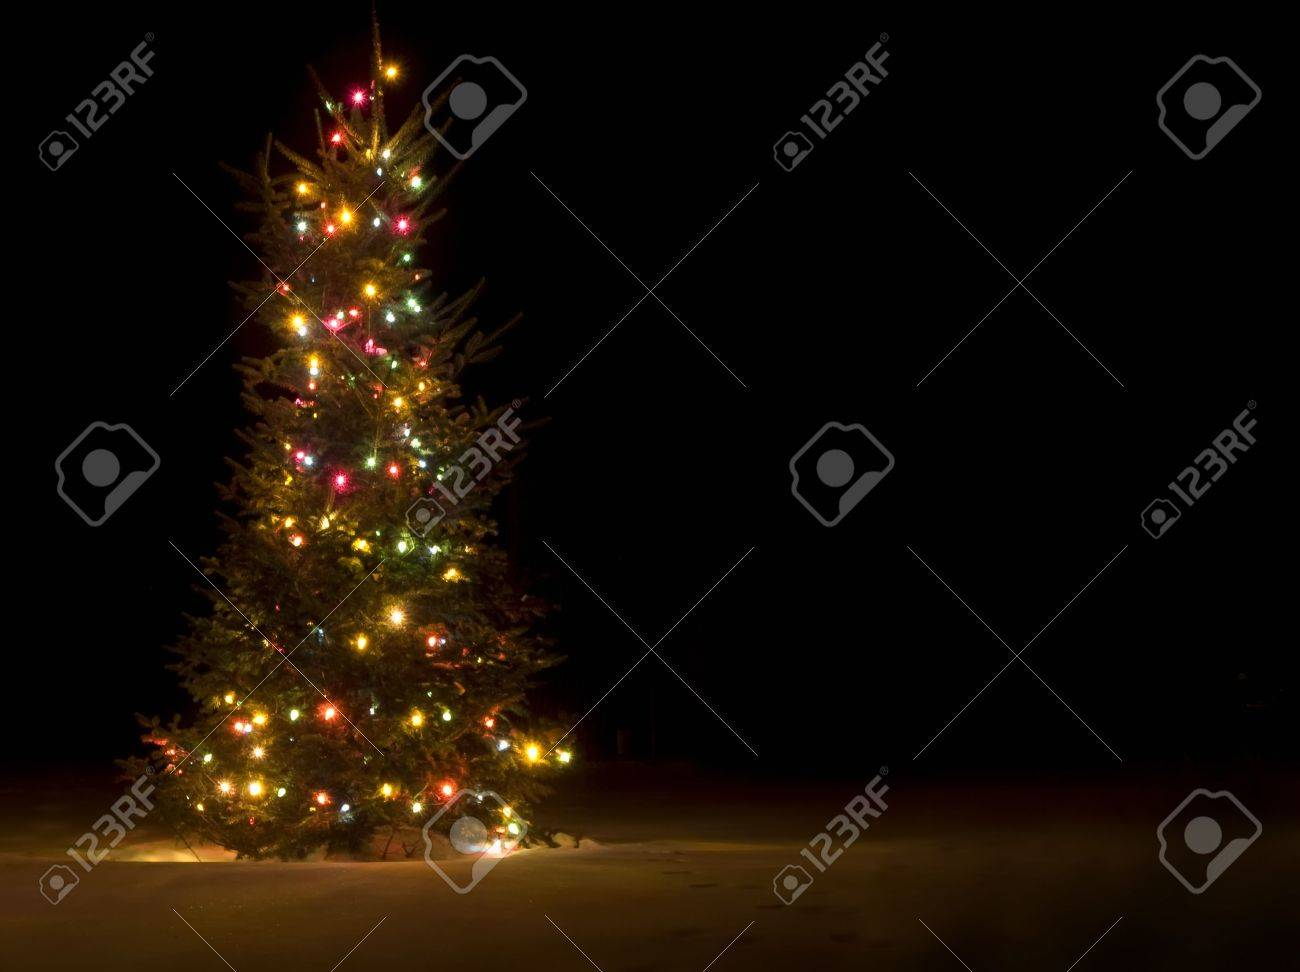 Outside Christmas Tree Lit Up At Night In The Snow Stock Photo Picture And Royalty Free Image Image 2309688